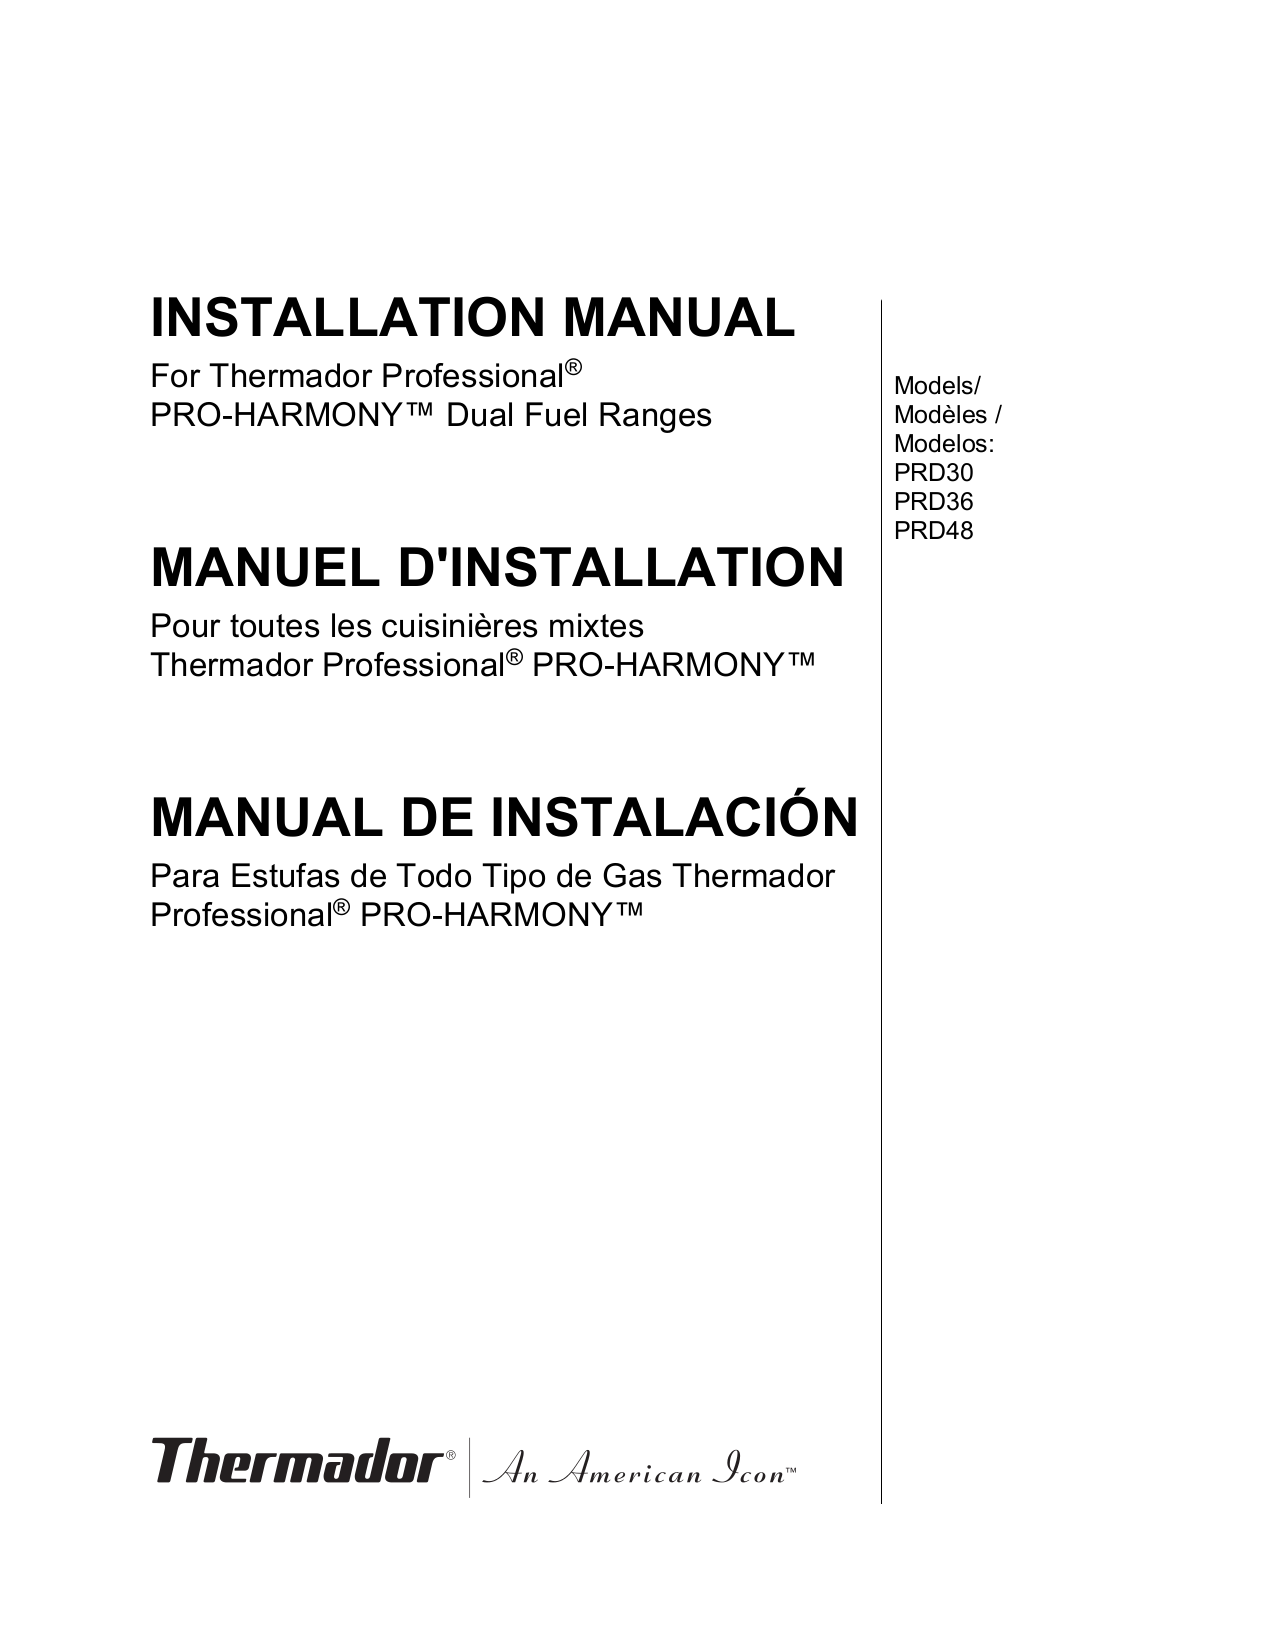 Thermador range pd304 364 366 484 486 service manual   grilling.